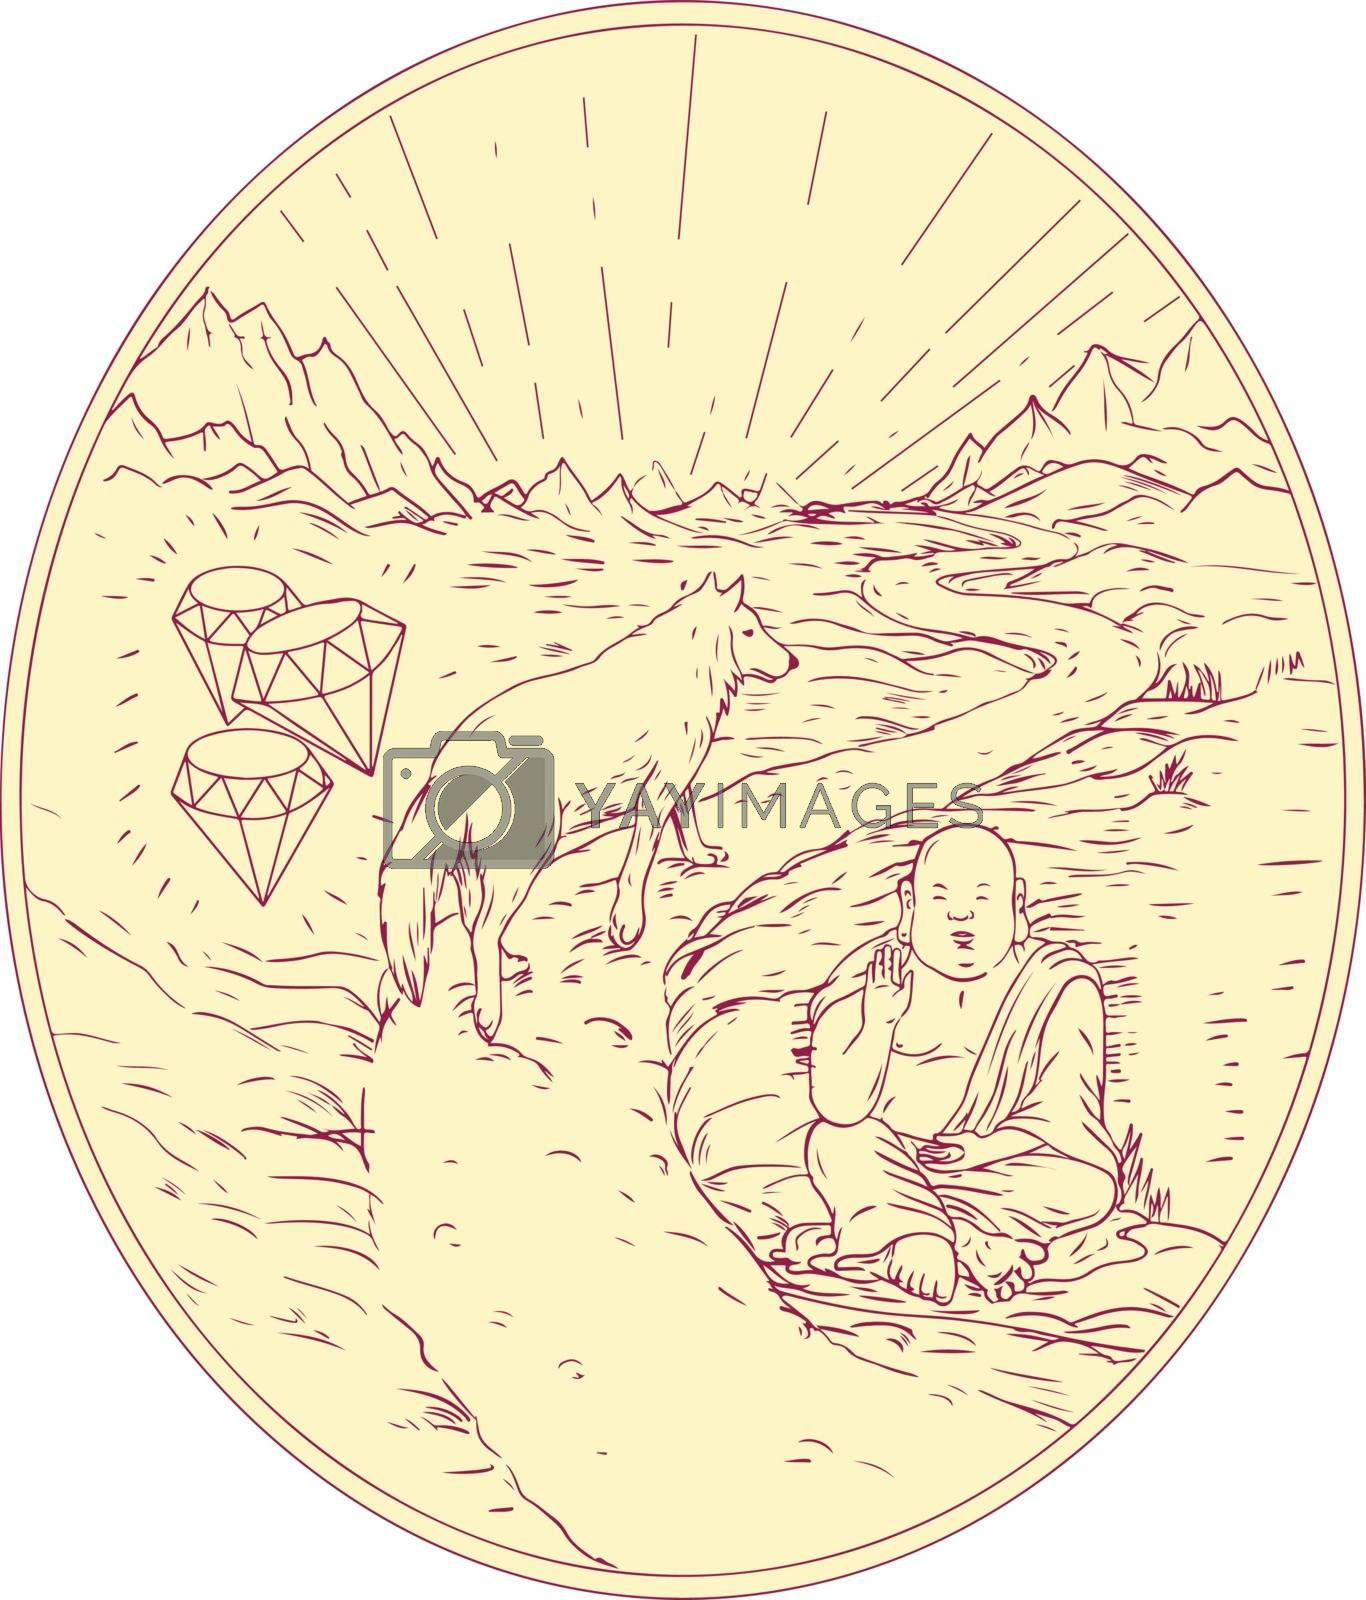 Drawing sketch style illustration of sitting Buddha and Wolf walking on Road with Diamond on one side and mountains in background.